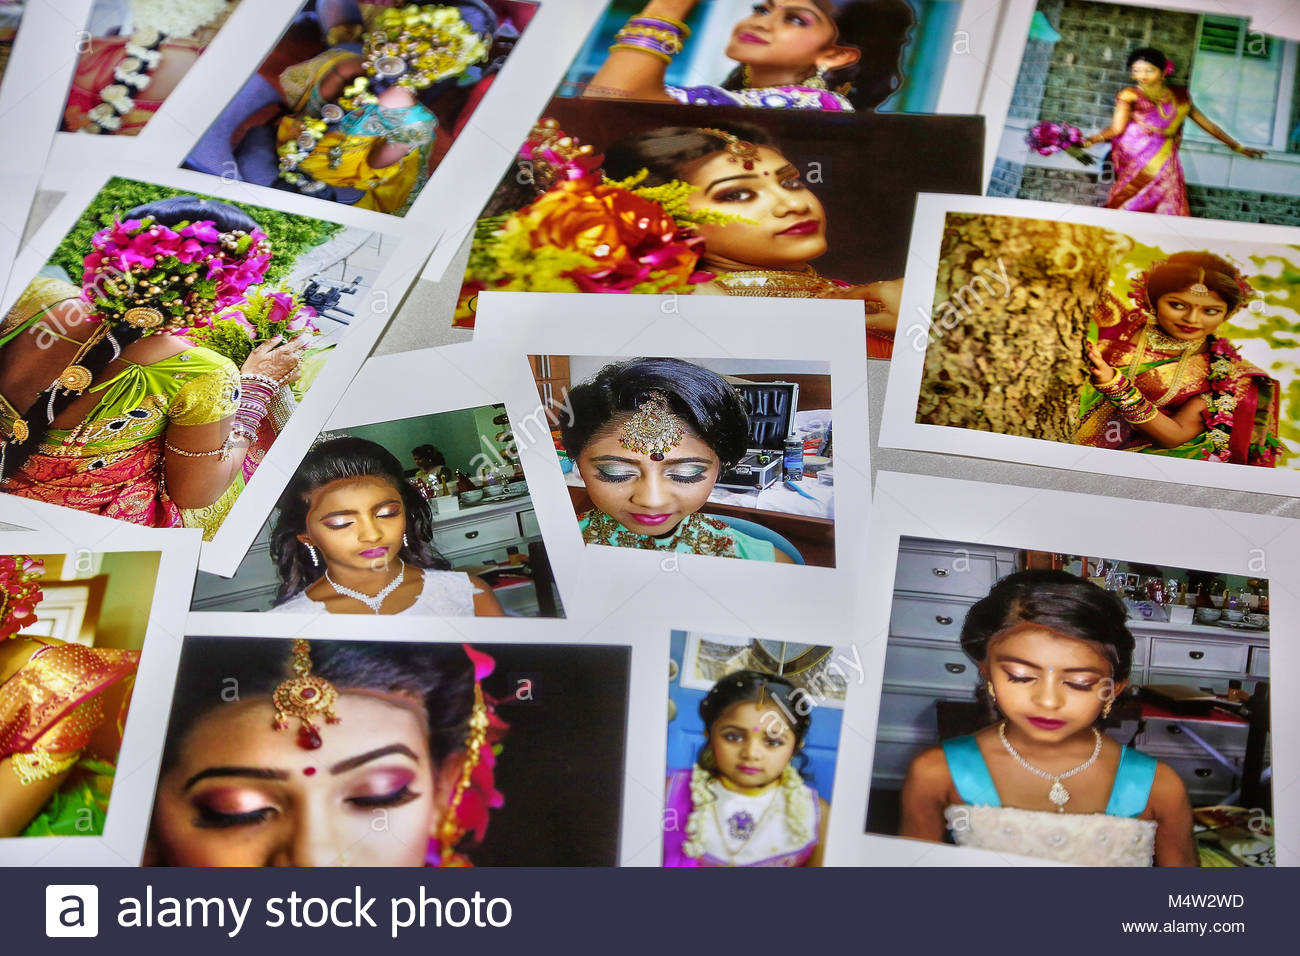 Assortment of photographs of Tamil Hindu brides and girls during their puberty ceremony displayed at a photo-booth. Stock Photo